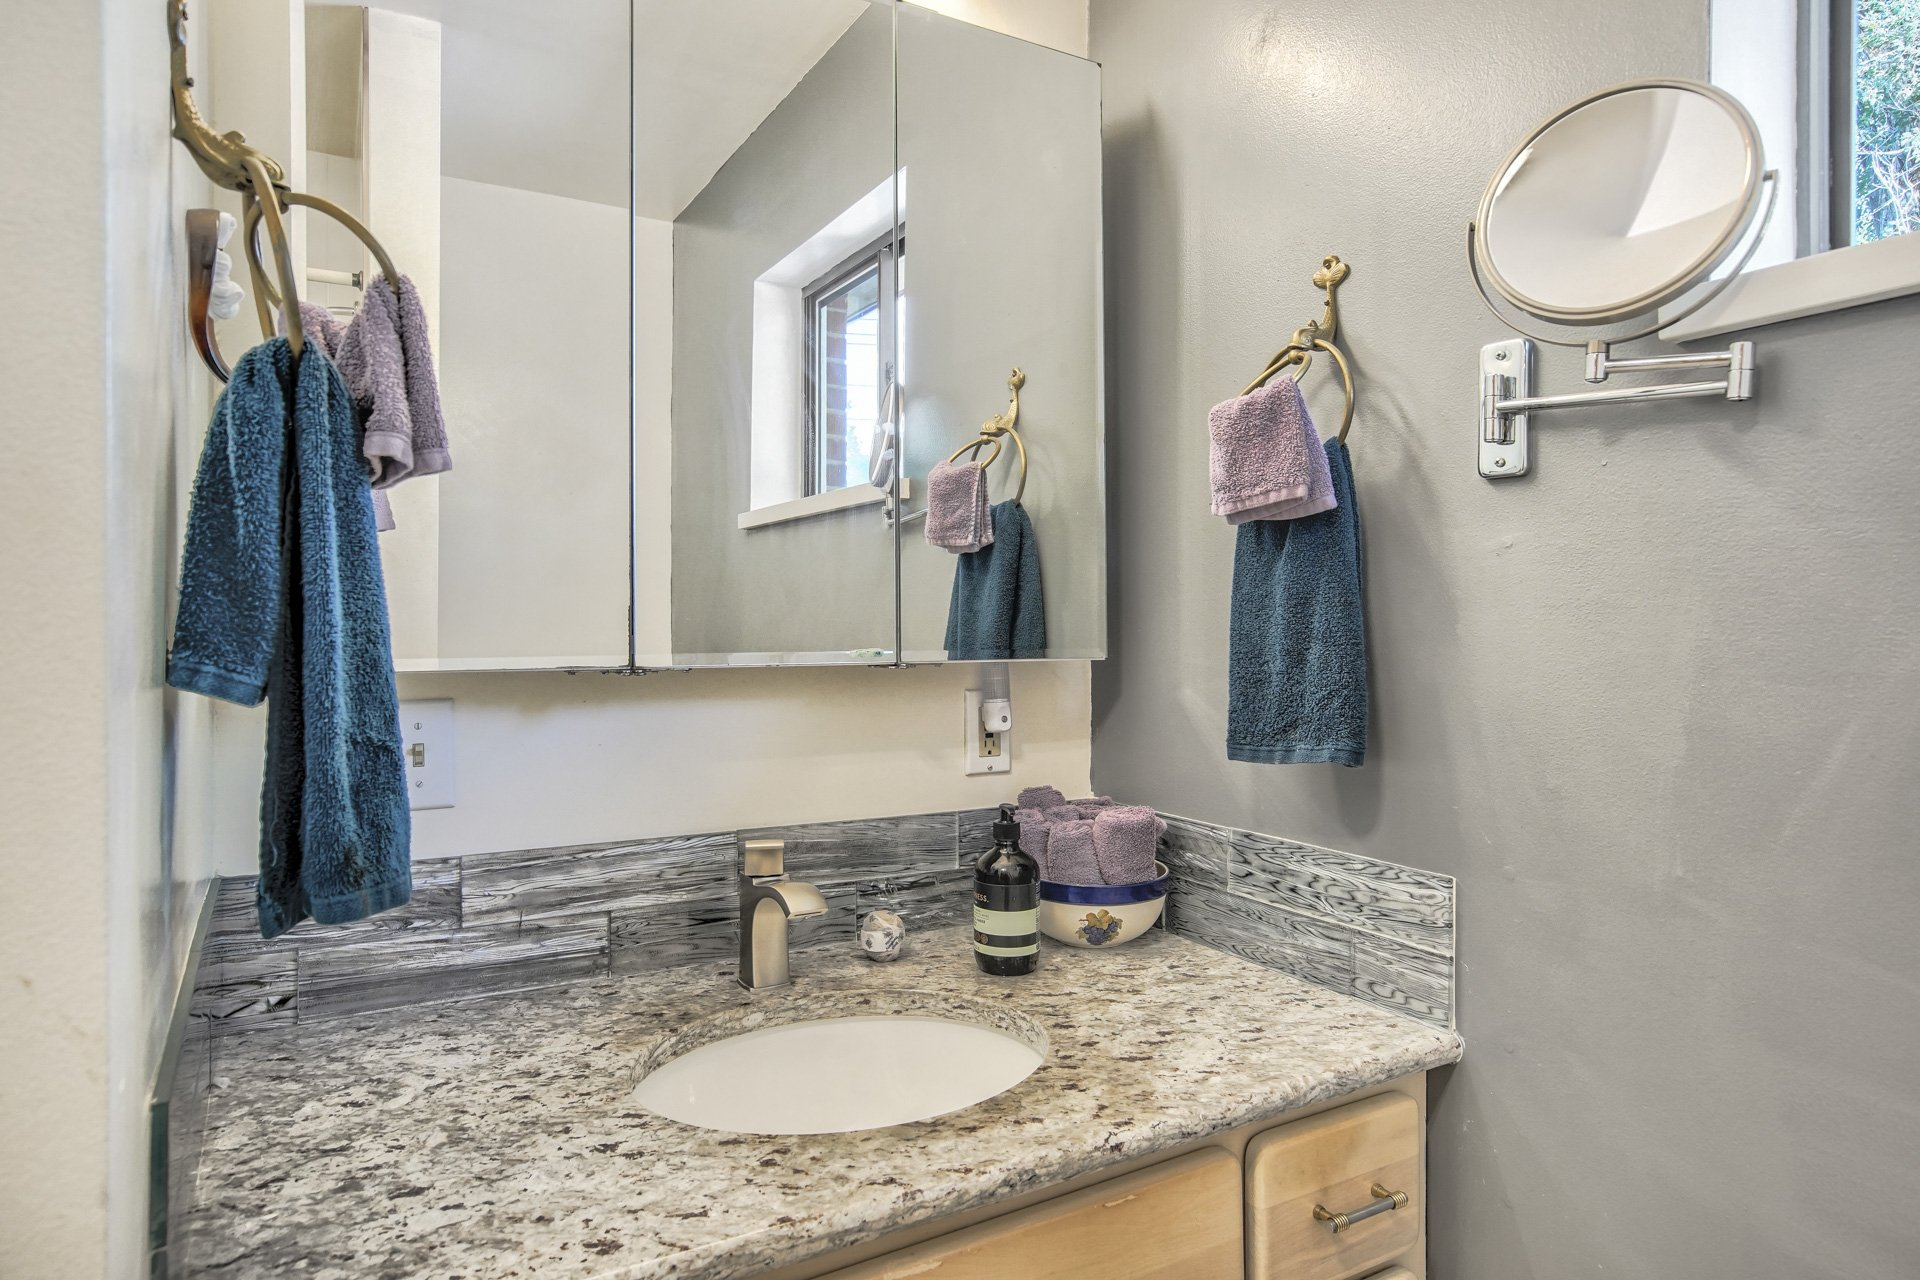 sink in granite counter with mirror